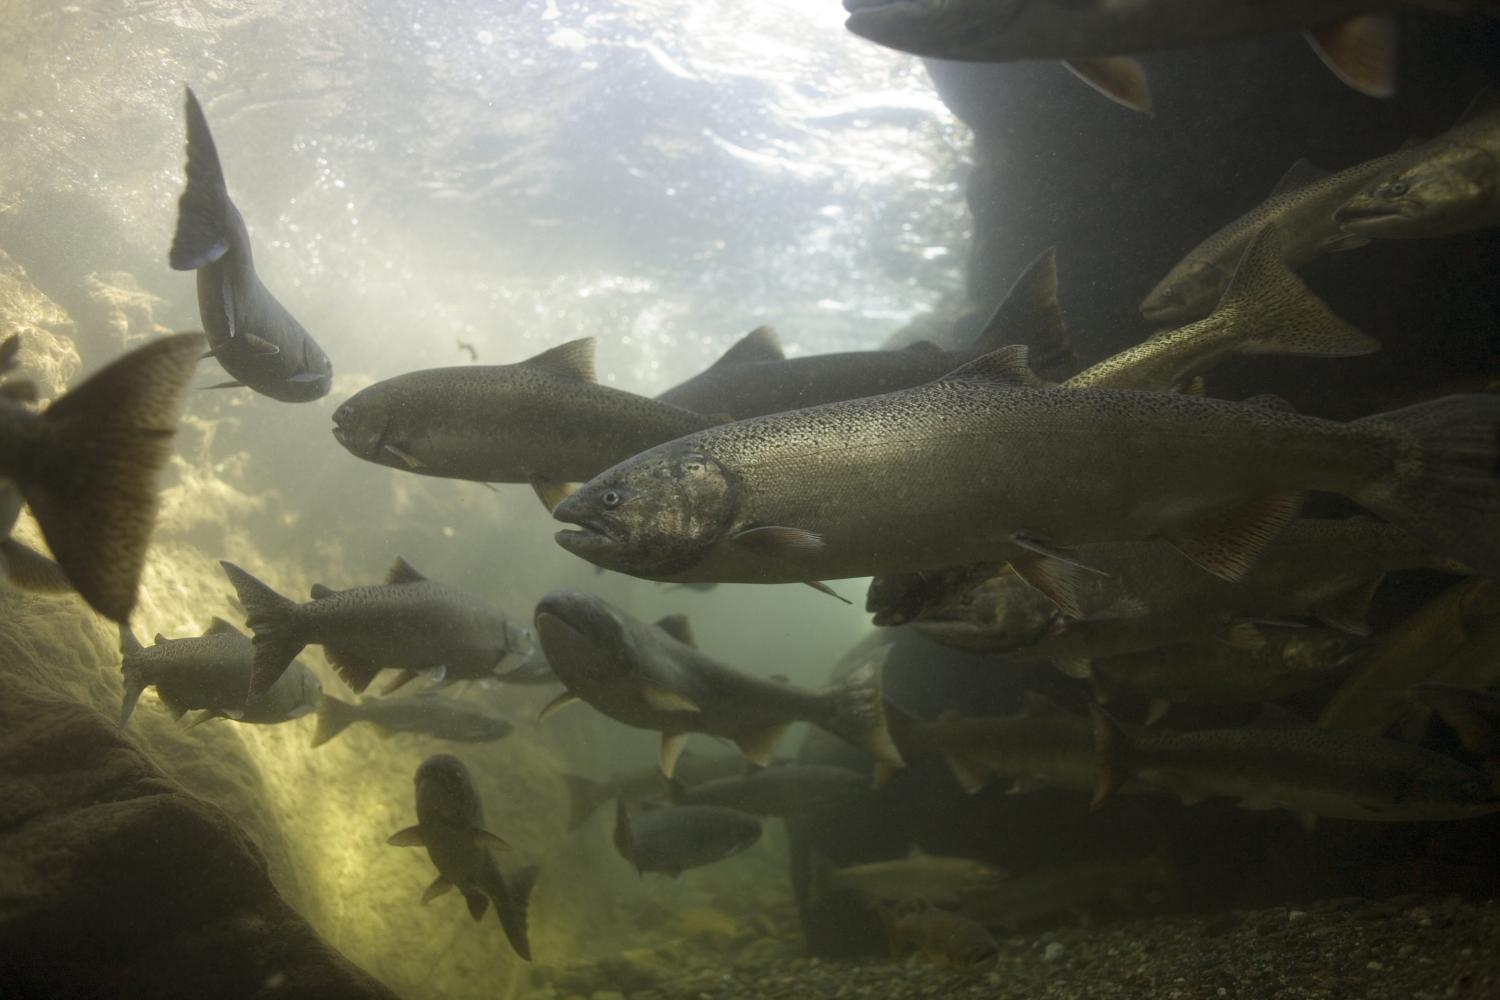 a discussion on the salmon and steelhead population Recovery plans for snake river salmon, steelhead released  the habitat is not  conducive to fish populations and having fish survive, said.